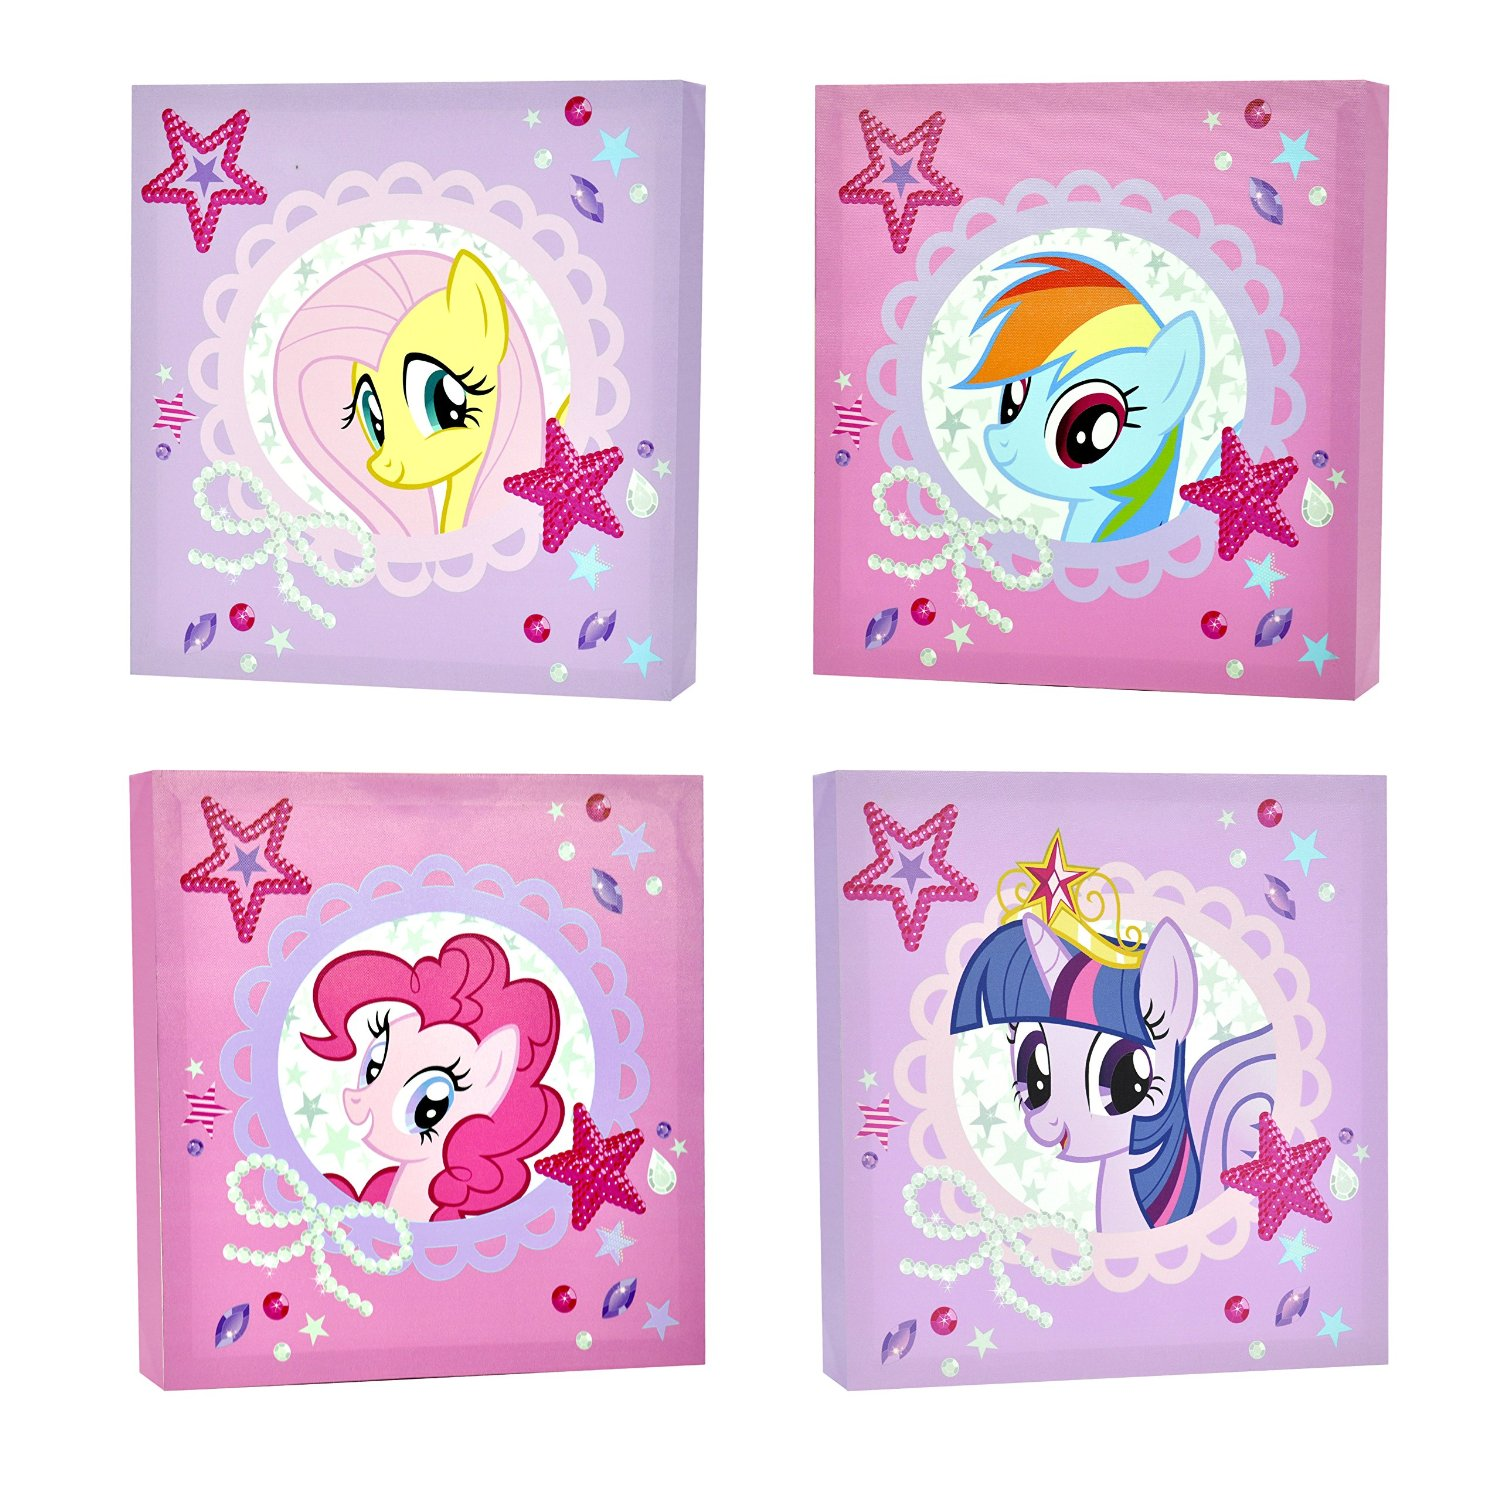 Current MLP Amazon Sales - Up to 60% Off | MLP Merch